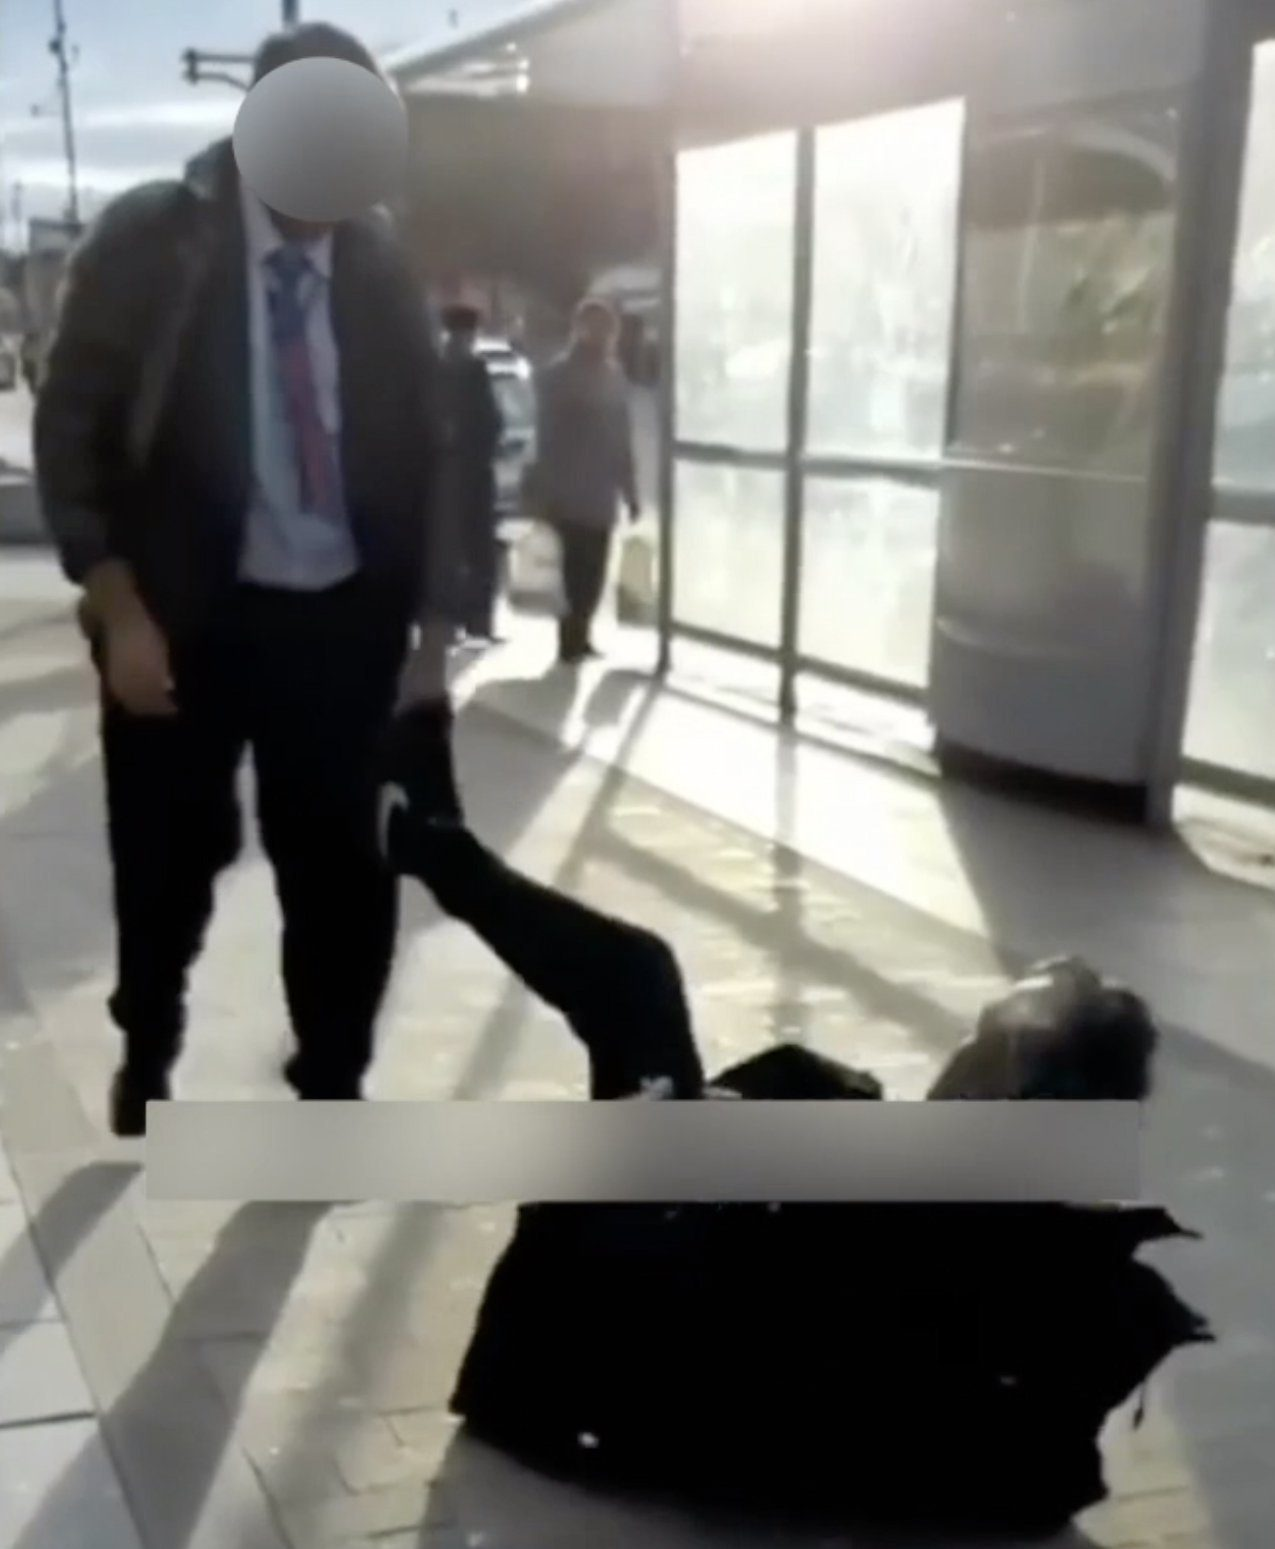 A schoolboy stands over an older man as they engage in a bizarre fight on the streets of Southall, London, February, 2019. A SHOCKING video has surfaced online showing a schoolboy PUSH a vulnerable old man to the ground on a busy street in Southall, London. In the clip, the schoolboy and elderly male engage in a bizarre fight as the teen?s laughing friends encourage the young assailant to ?Bang him up!?. The old man tries to get away from the teenagers. But in a shocking twist, the schoolboy shoves the feeble pensioner so he tumbles and rolls across the pavement. Social media users have condemned the appalling incident, which is believed to have taken place in South Road in Southall earlier this month. The video appears to have been filmed by the young assailant?s accomplices. The footage was originally posted on Instagram page @ub1ub2 but has since been deleted. ... SEE COPY AND VID ... PIC BY NEWS DOG MEDIA ... 0121 517 0019